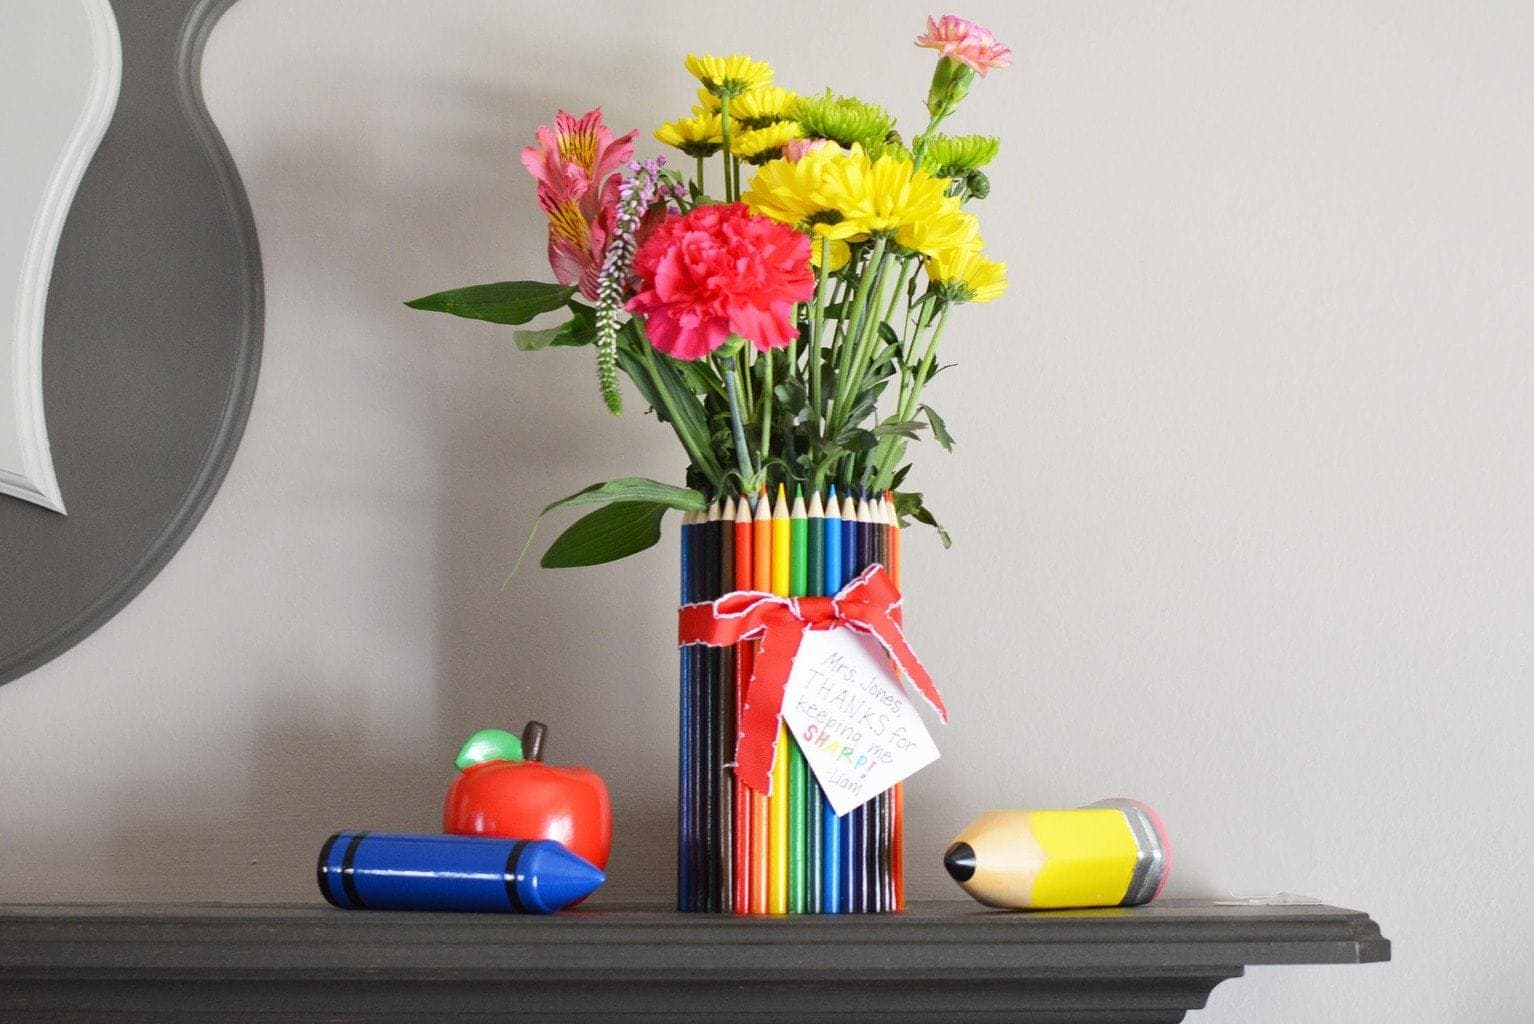 diy teacher gift made with colored pencils and flowers